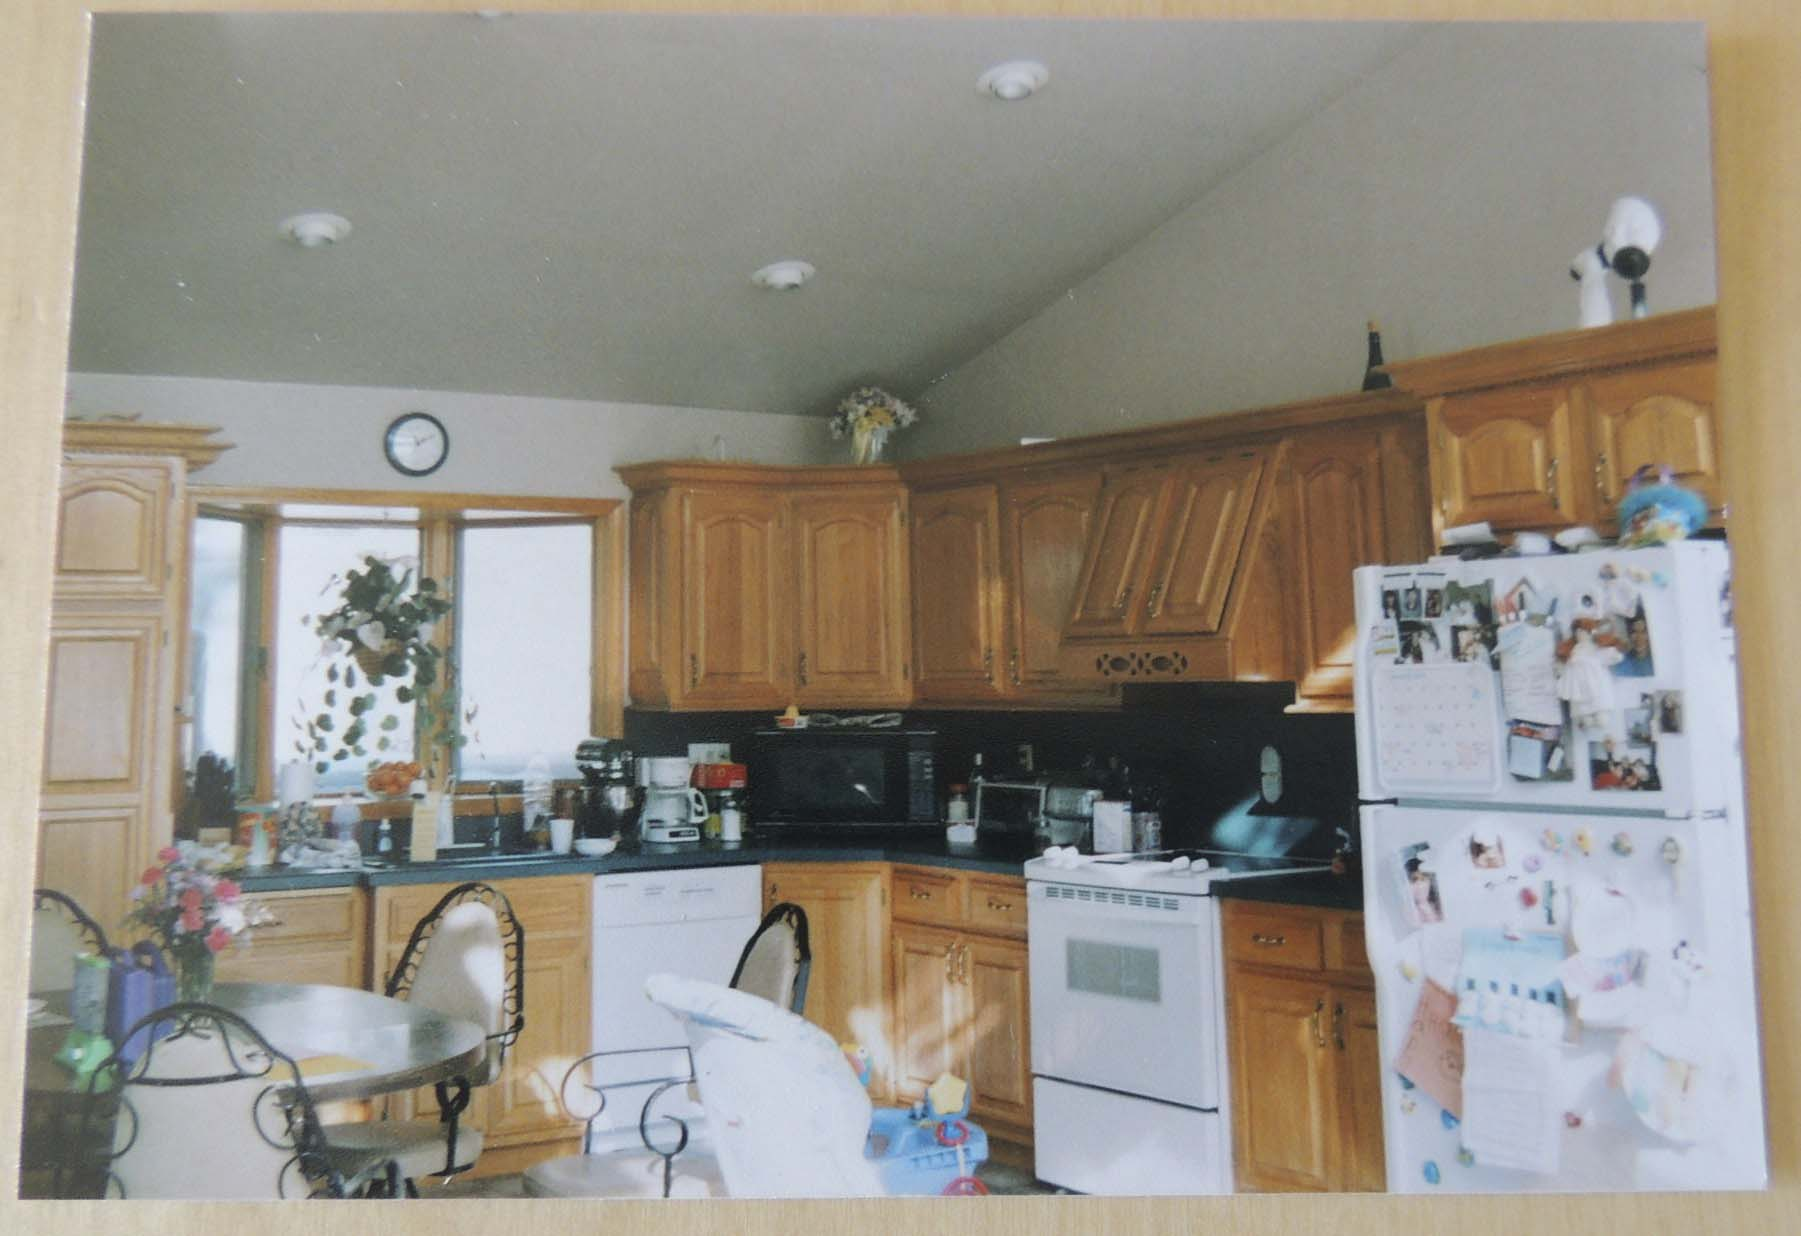 The kitchen in March 2000, under previous ownership.